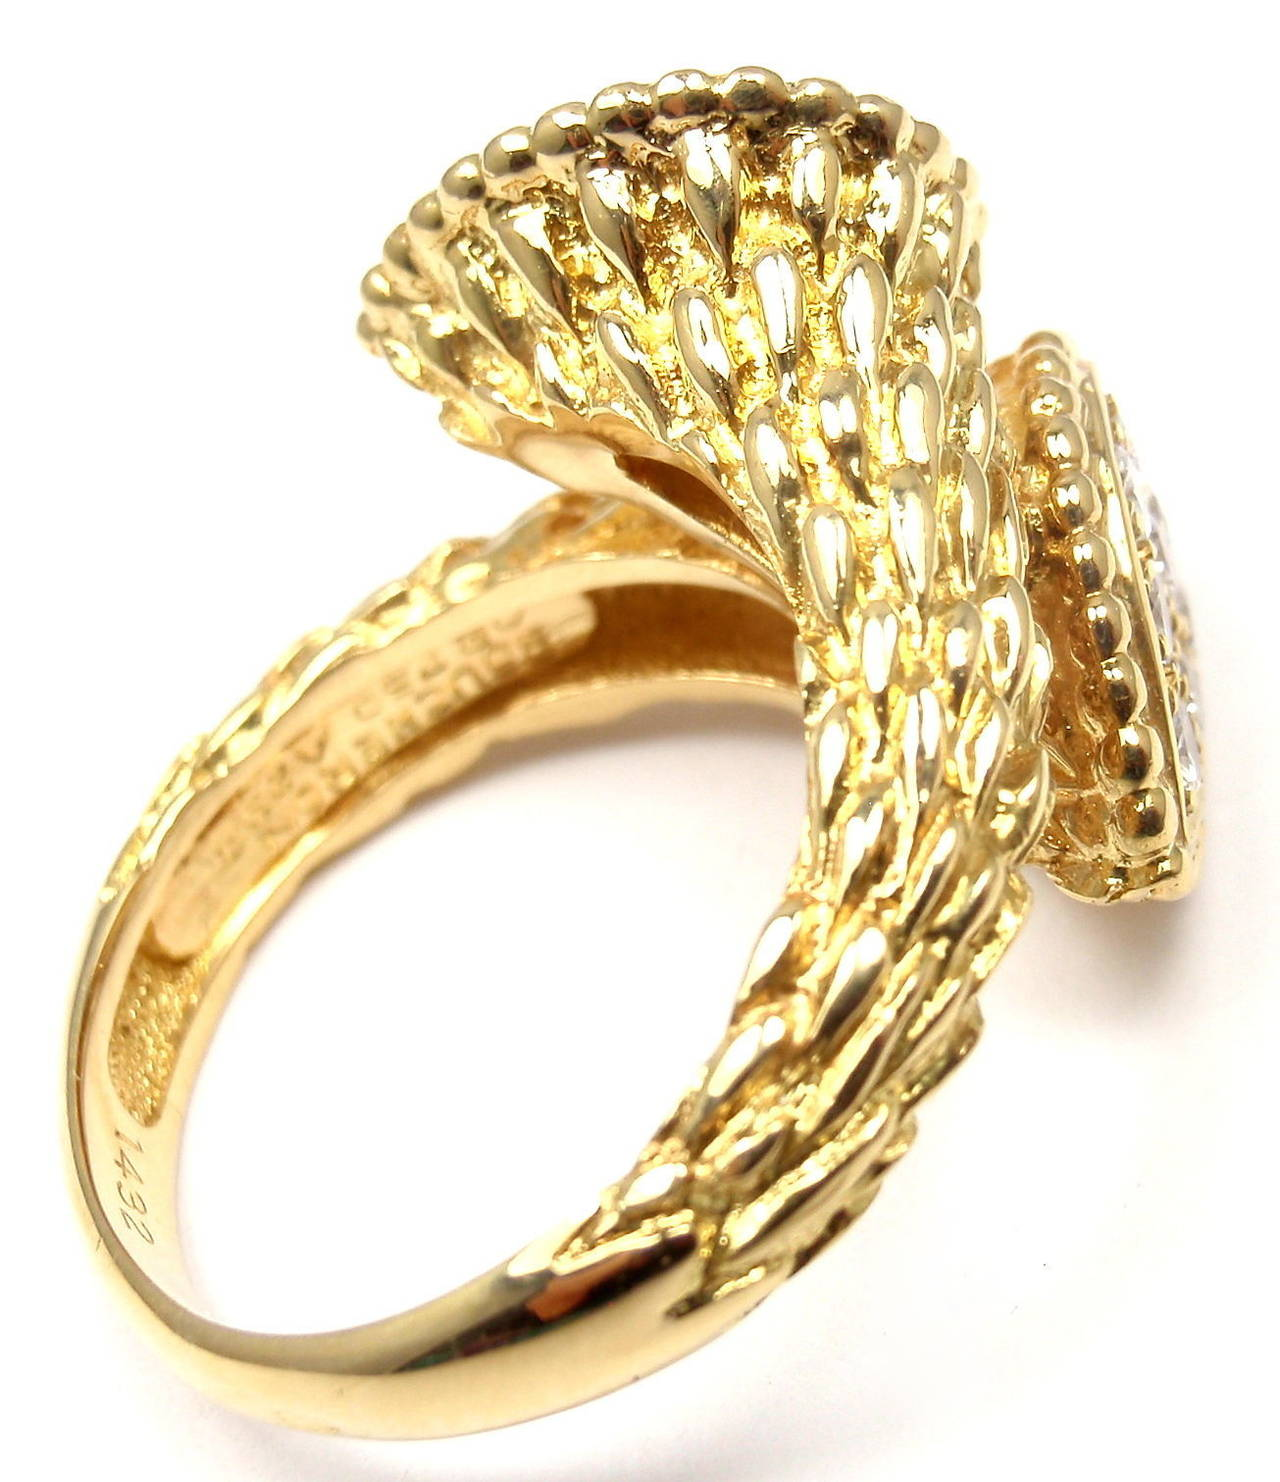 9415fa778c4c7b Boucheron Serpent Bohème Toi et Moi Diamond Gold Ring In New Condition For  Sale In Holland